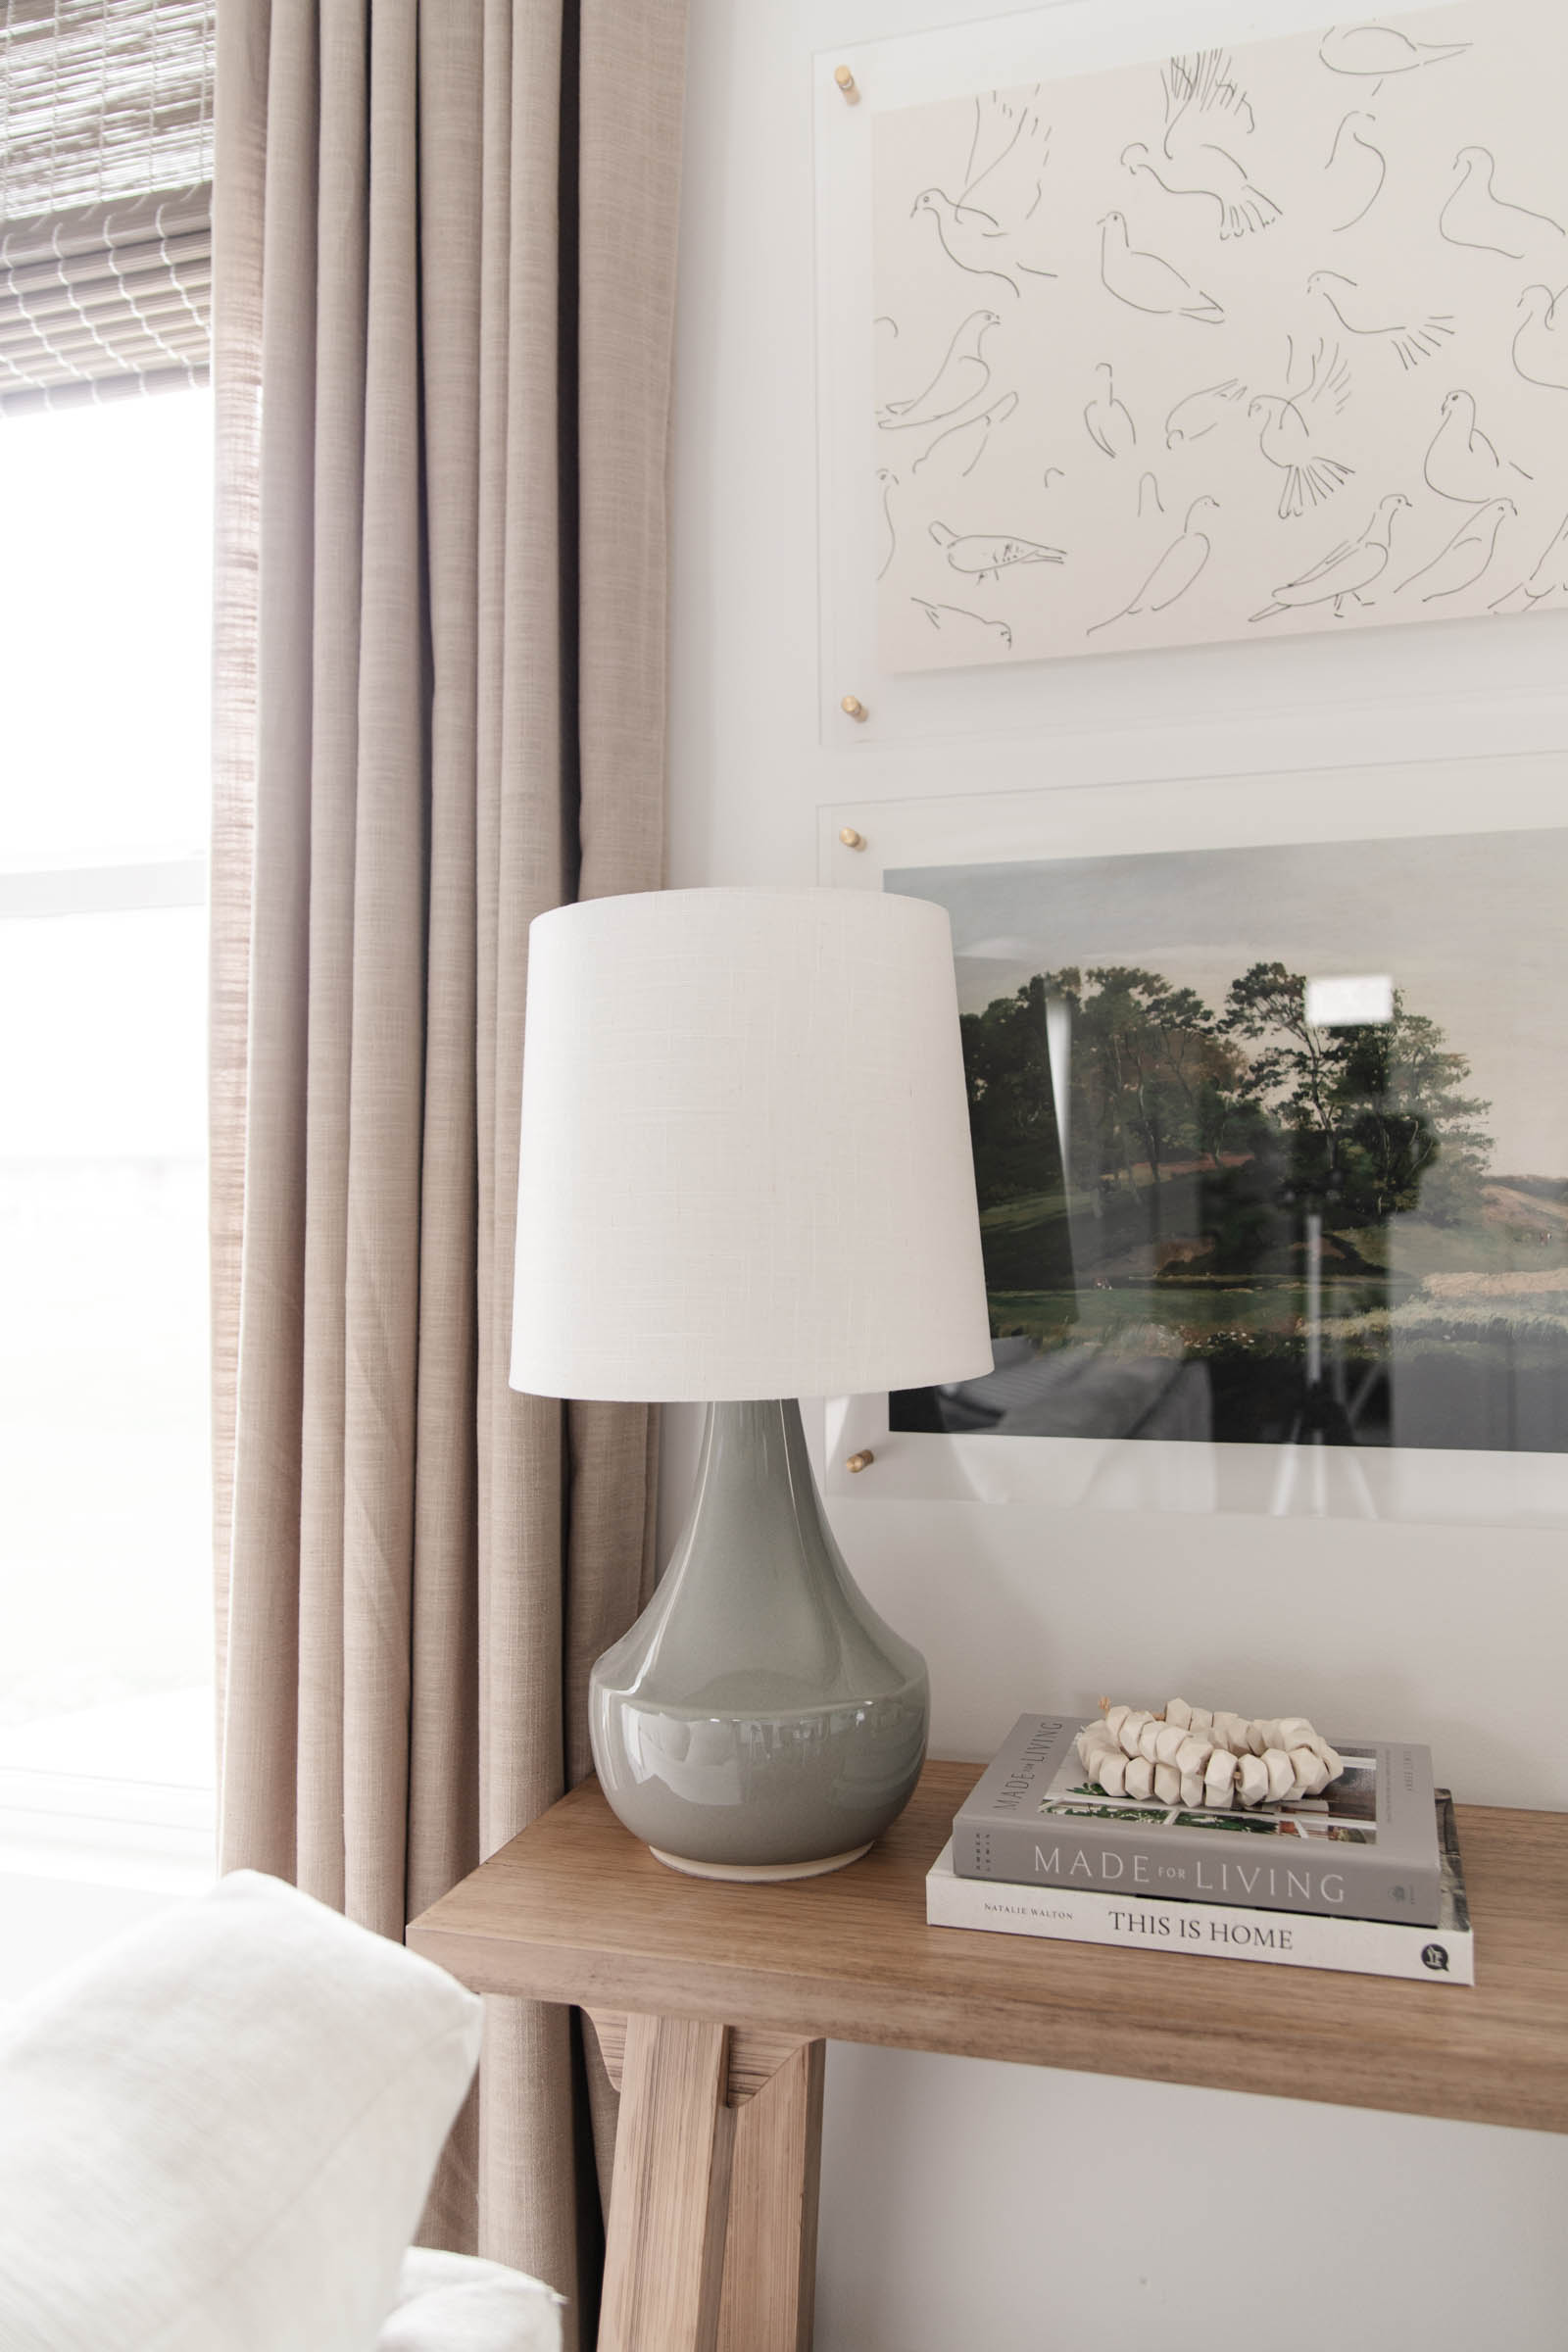 small console table with gray lamp, gray beige curtains